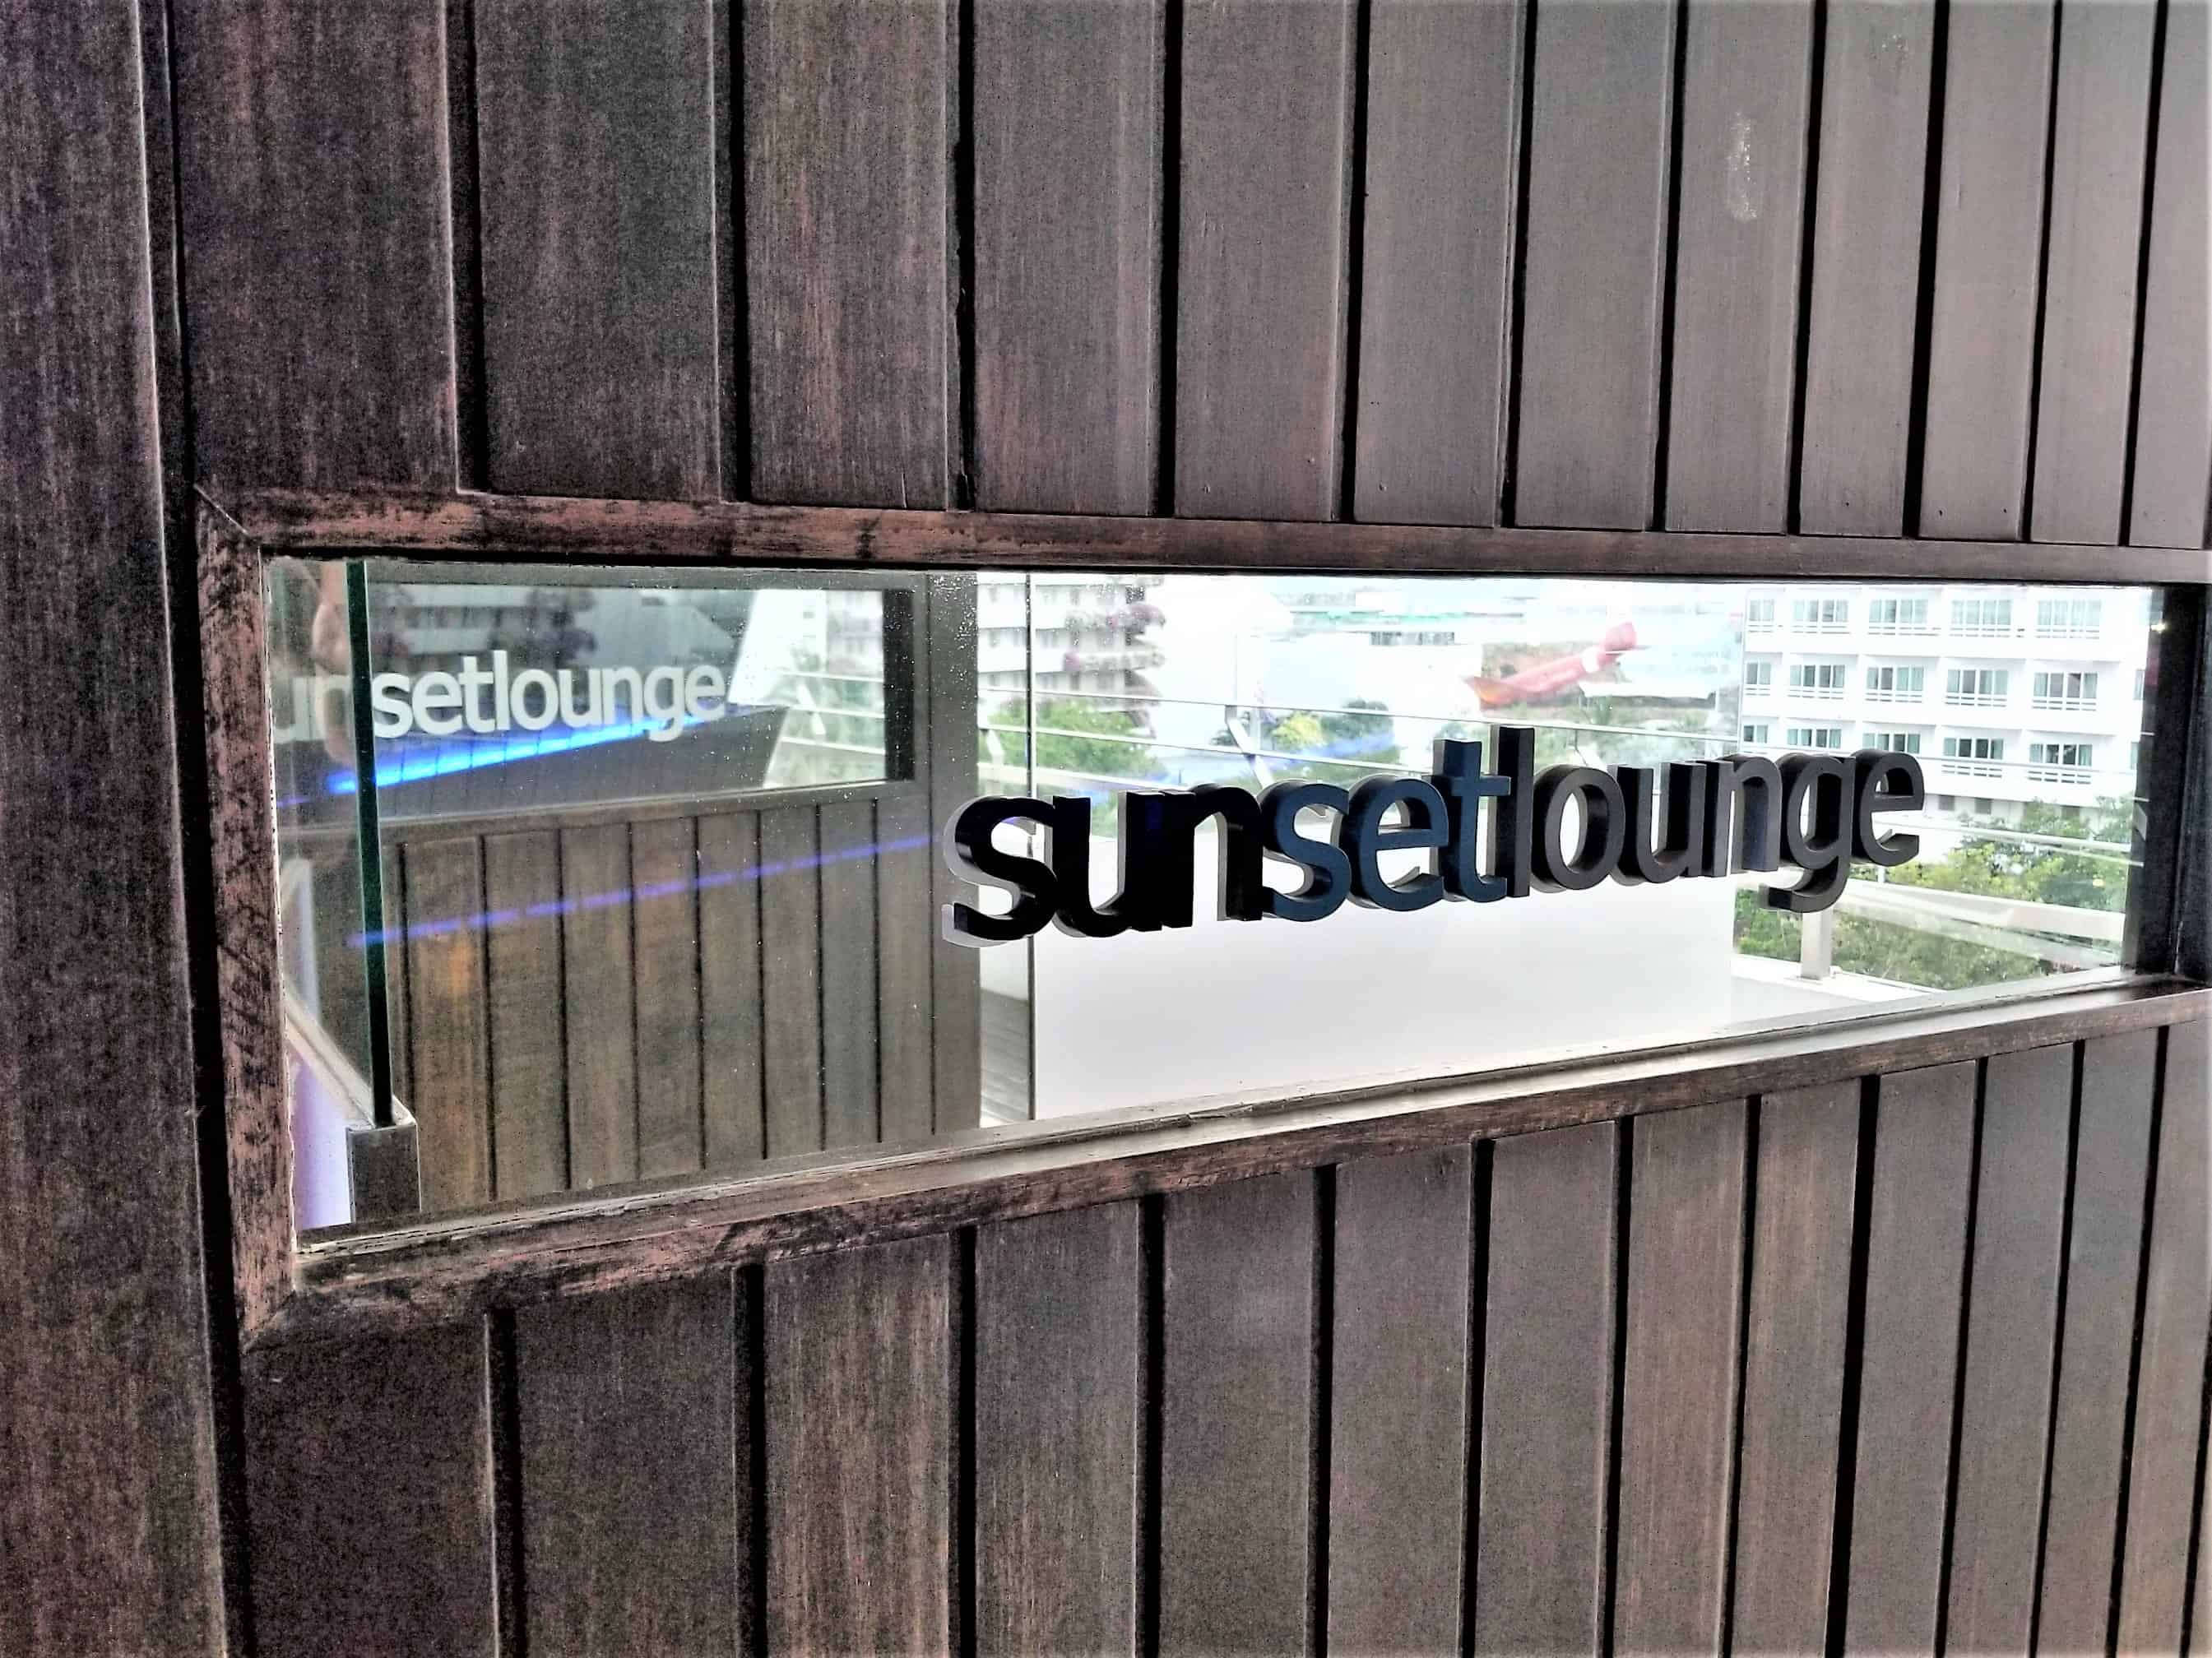 image-of-hotel-baraquda-sunset-lounge